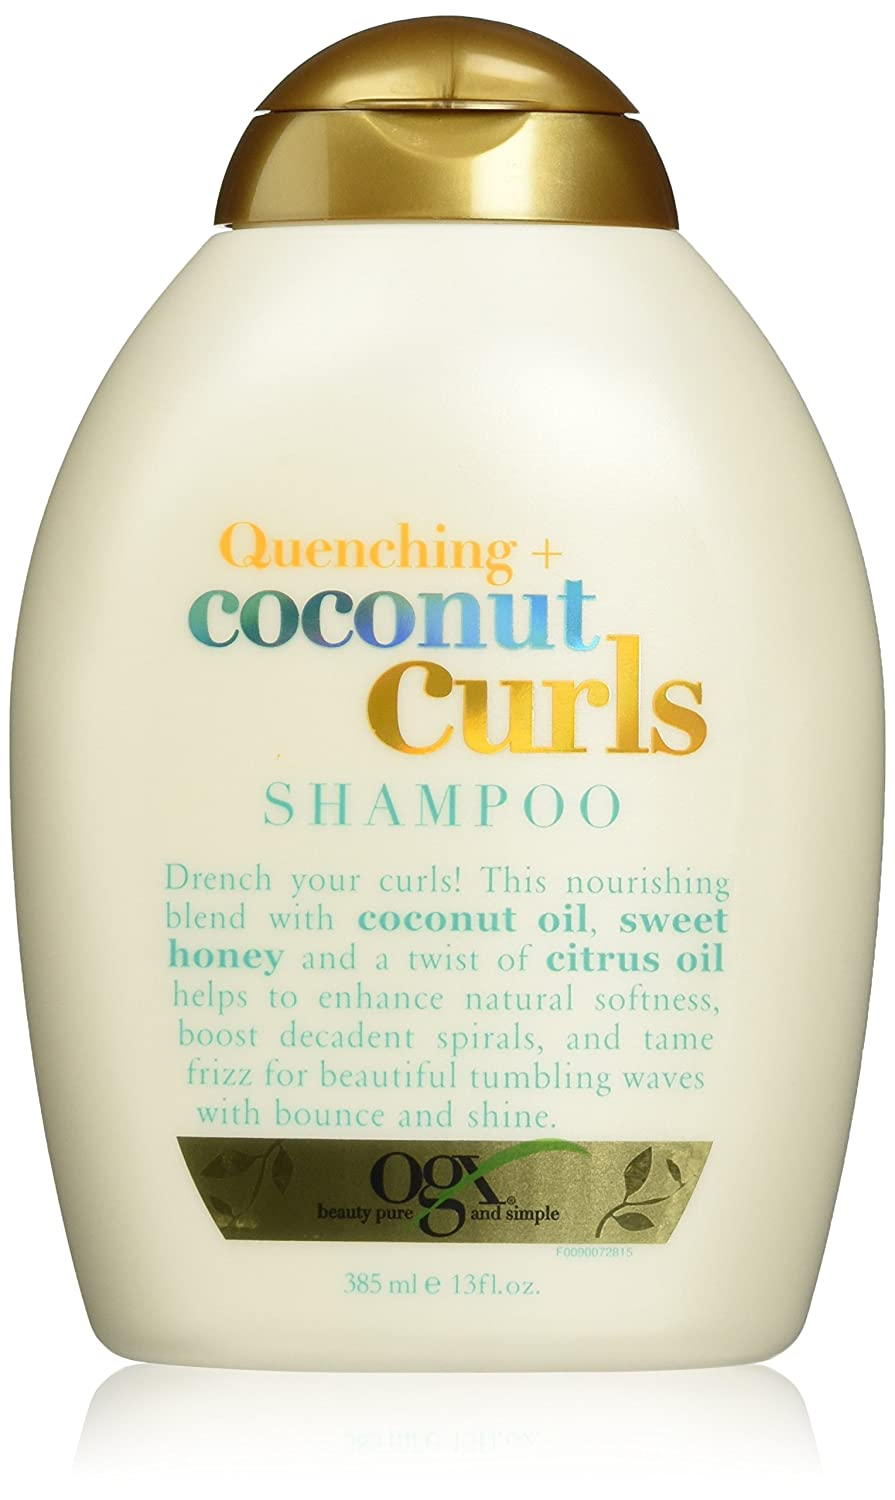 Buy Organix Quenching Coconut Curls Shampoo 385 Ml Online At Low Prices In India Amazon In